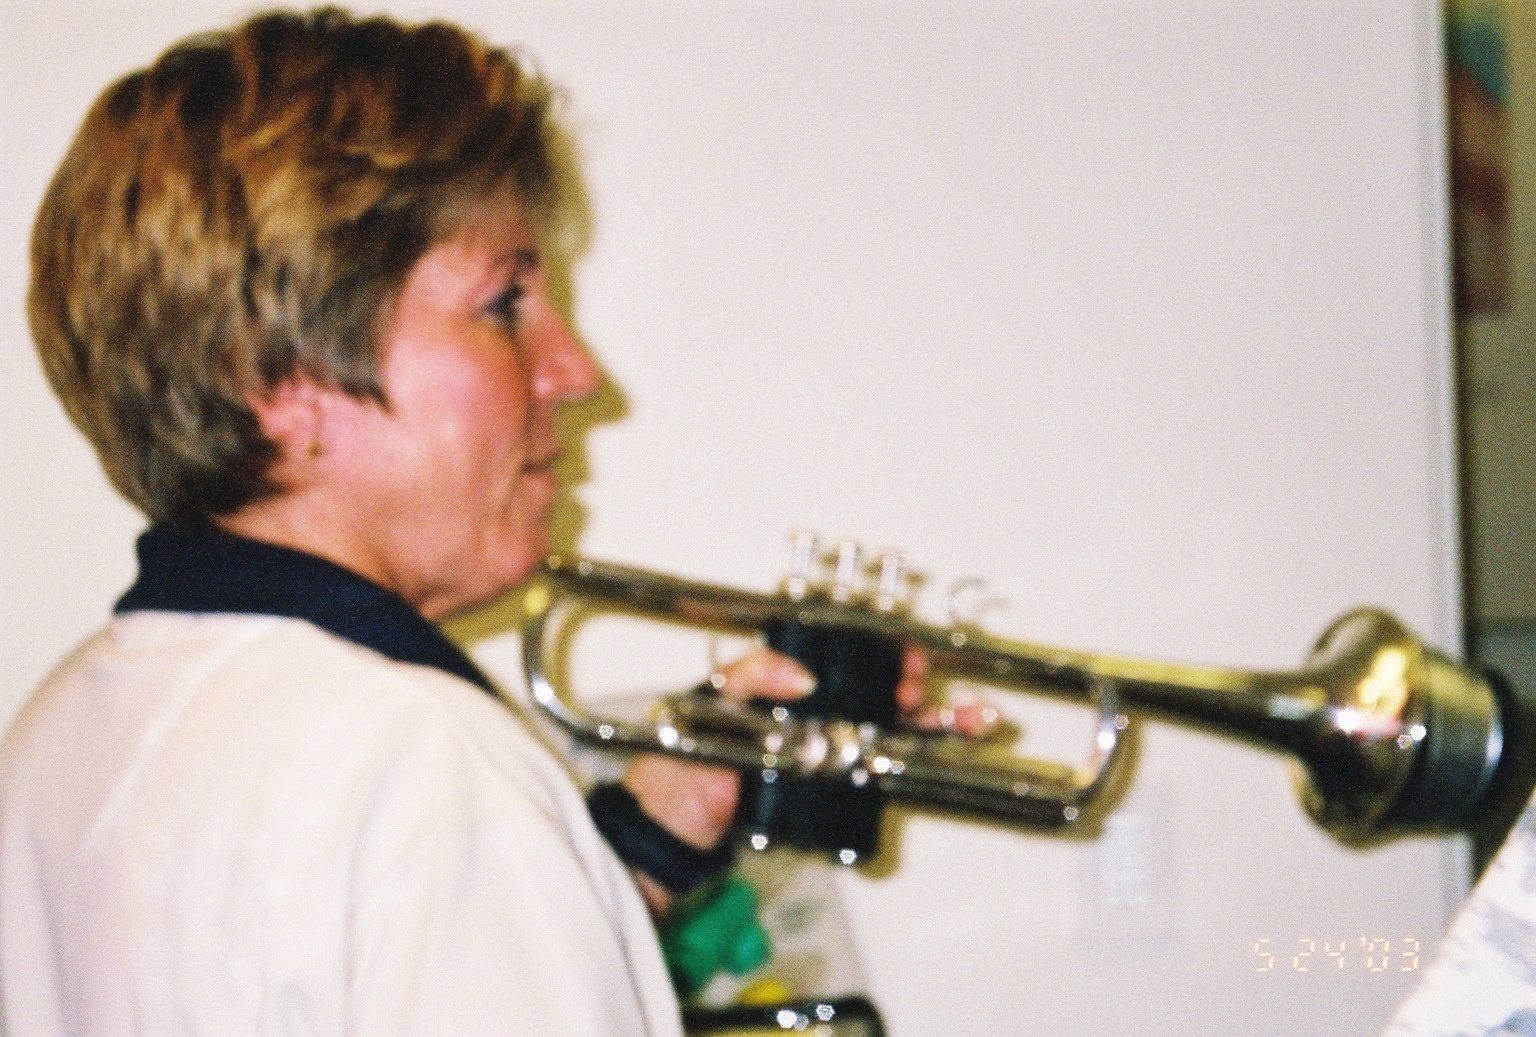 Carolyn holding trumpet to play at PowerLung booth at ITG 2003